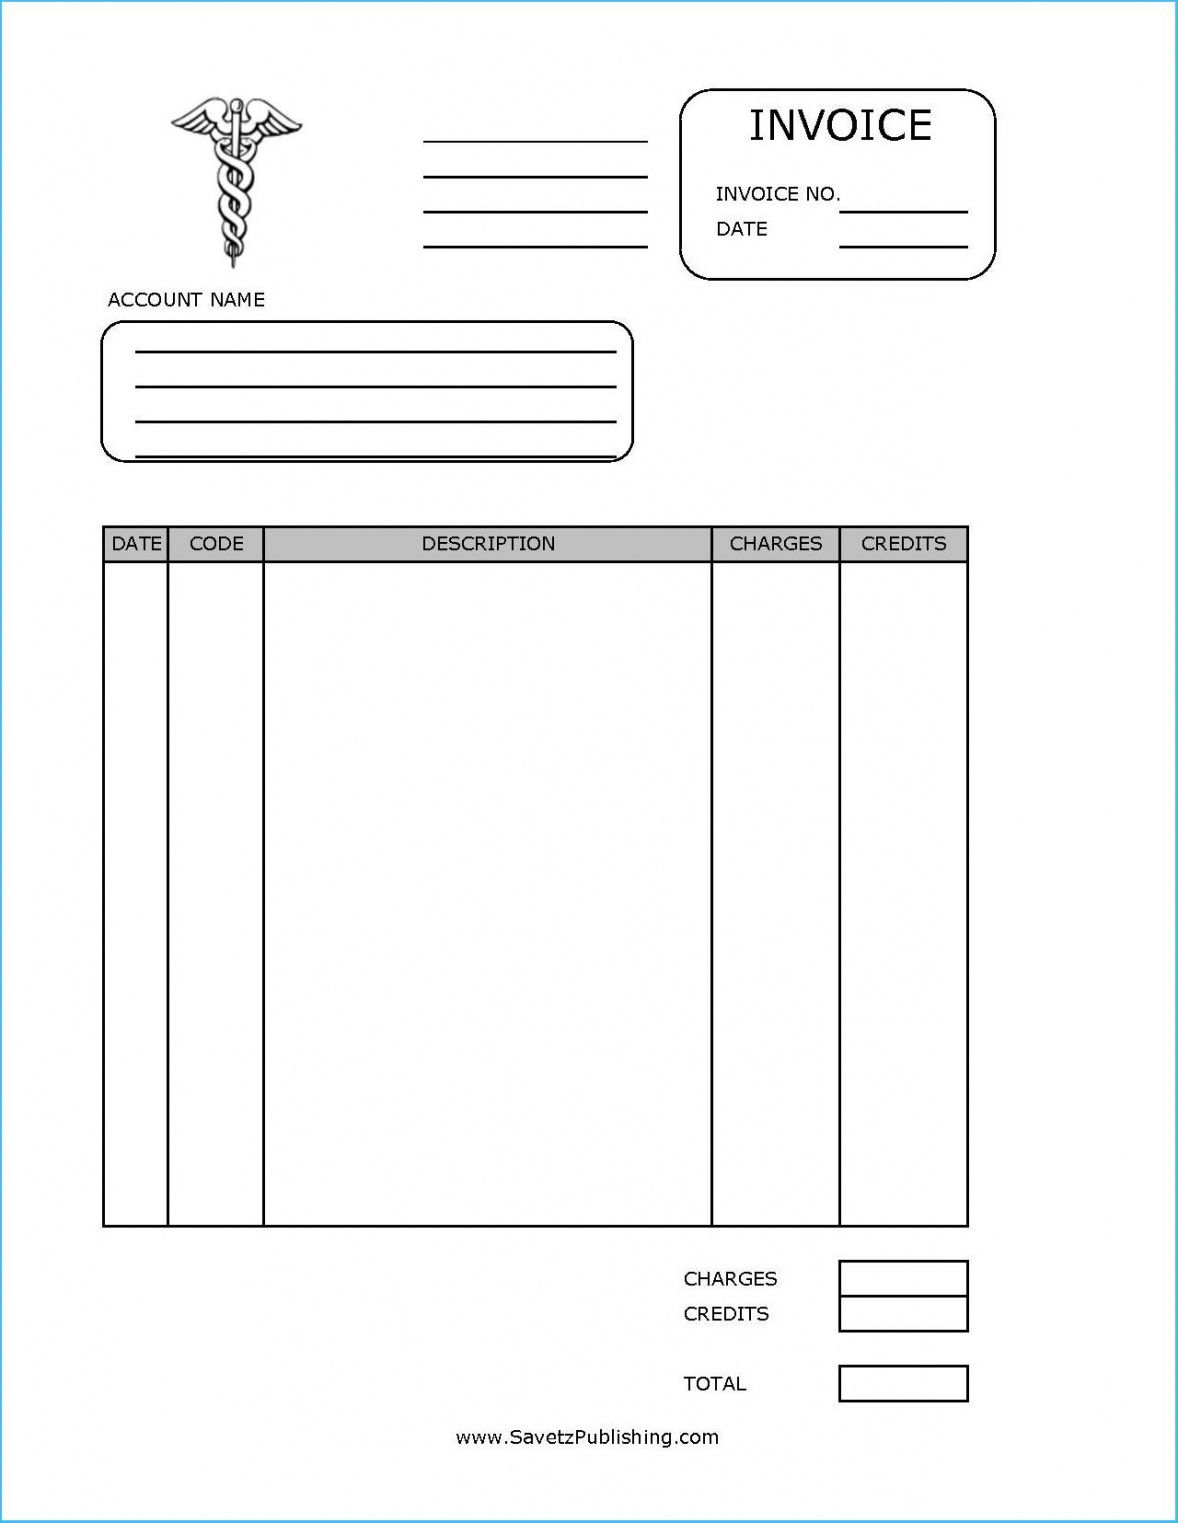 Browse Our Sample Of Medical Records Fee Invoice Template Invoice Template Free Receipt Template Invoice Template Word